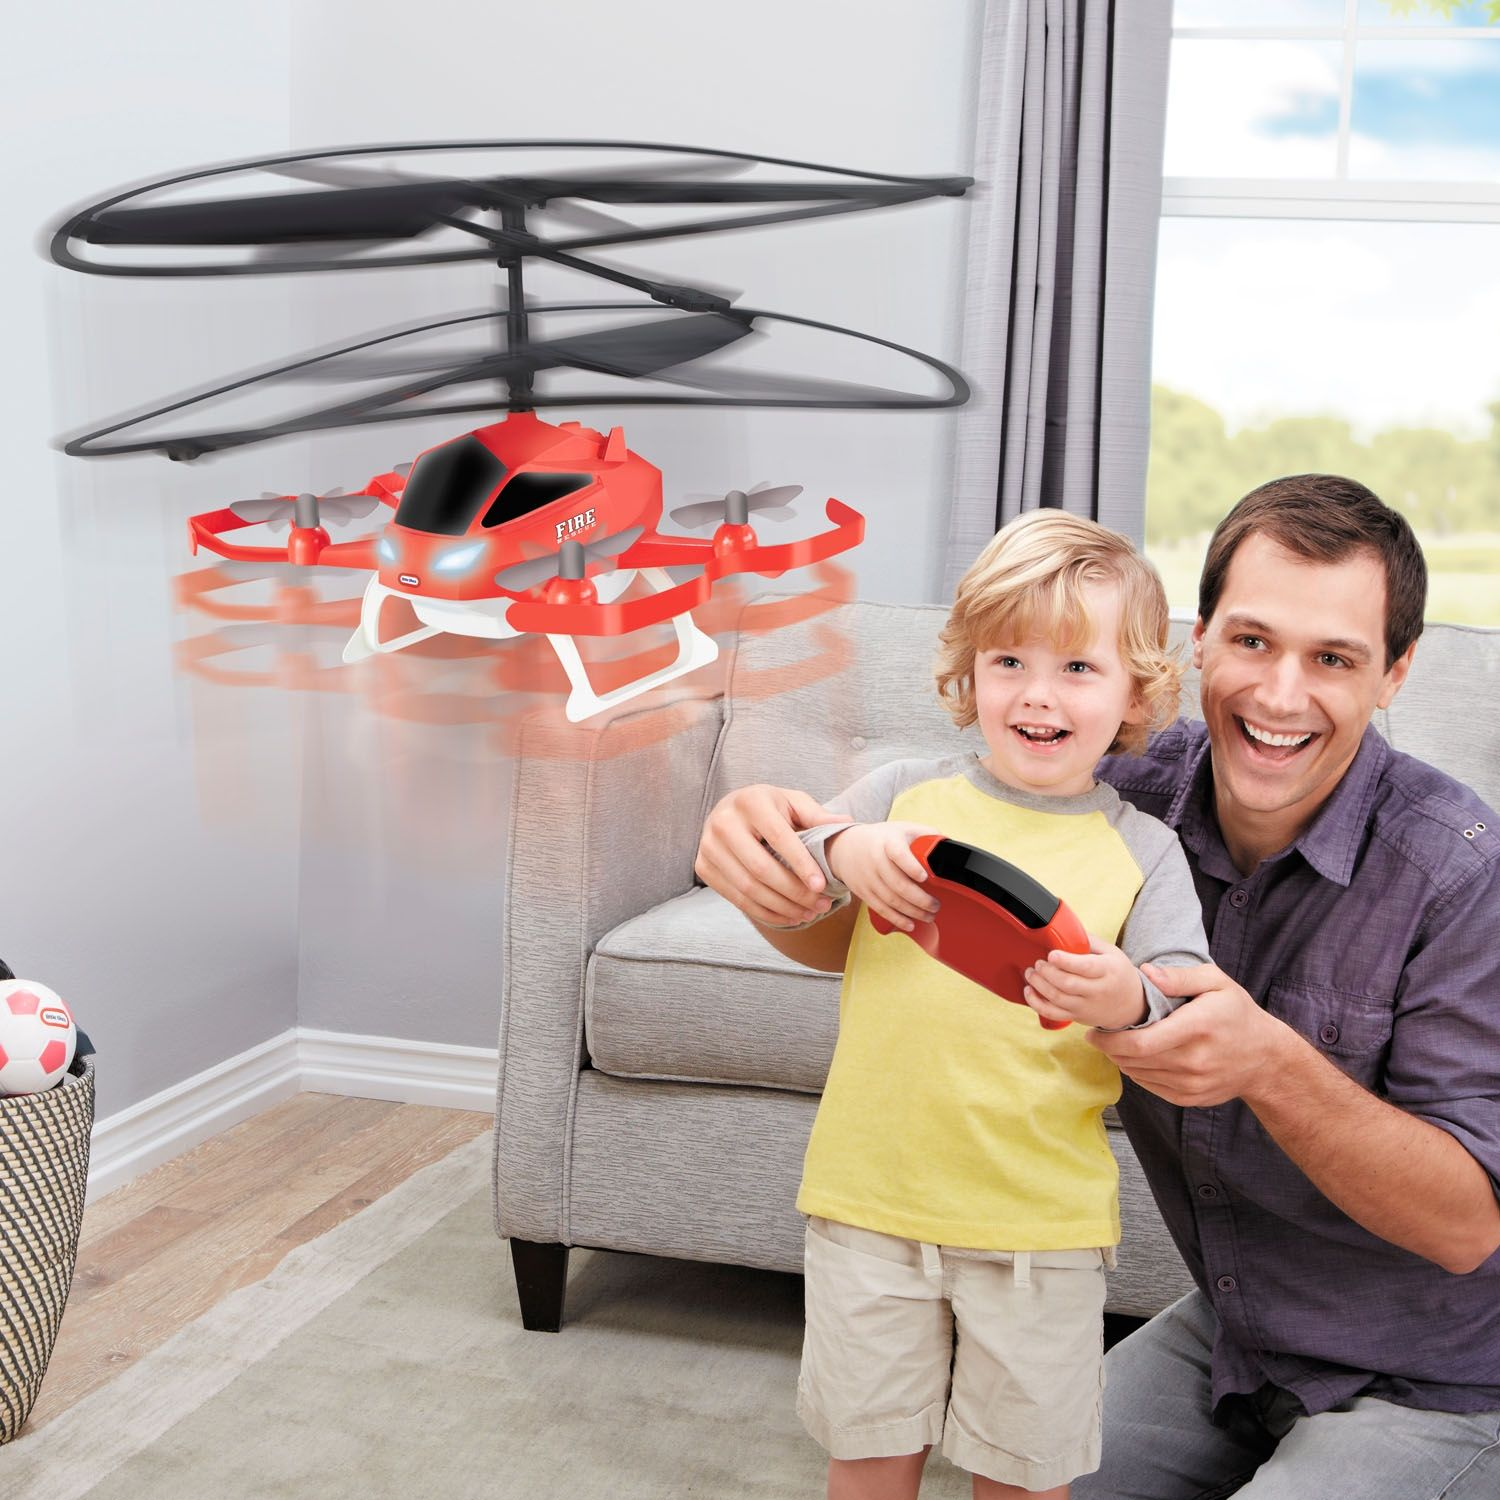 My First Drone™ Best kids toys, Toys for boys, 4 year